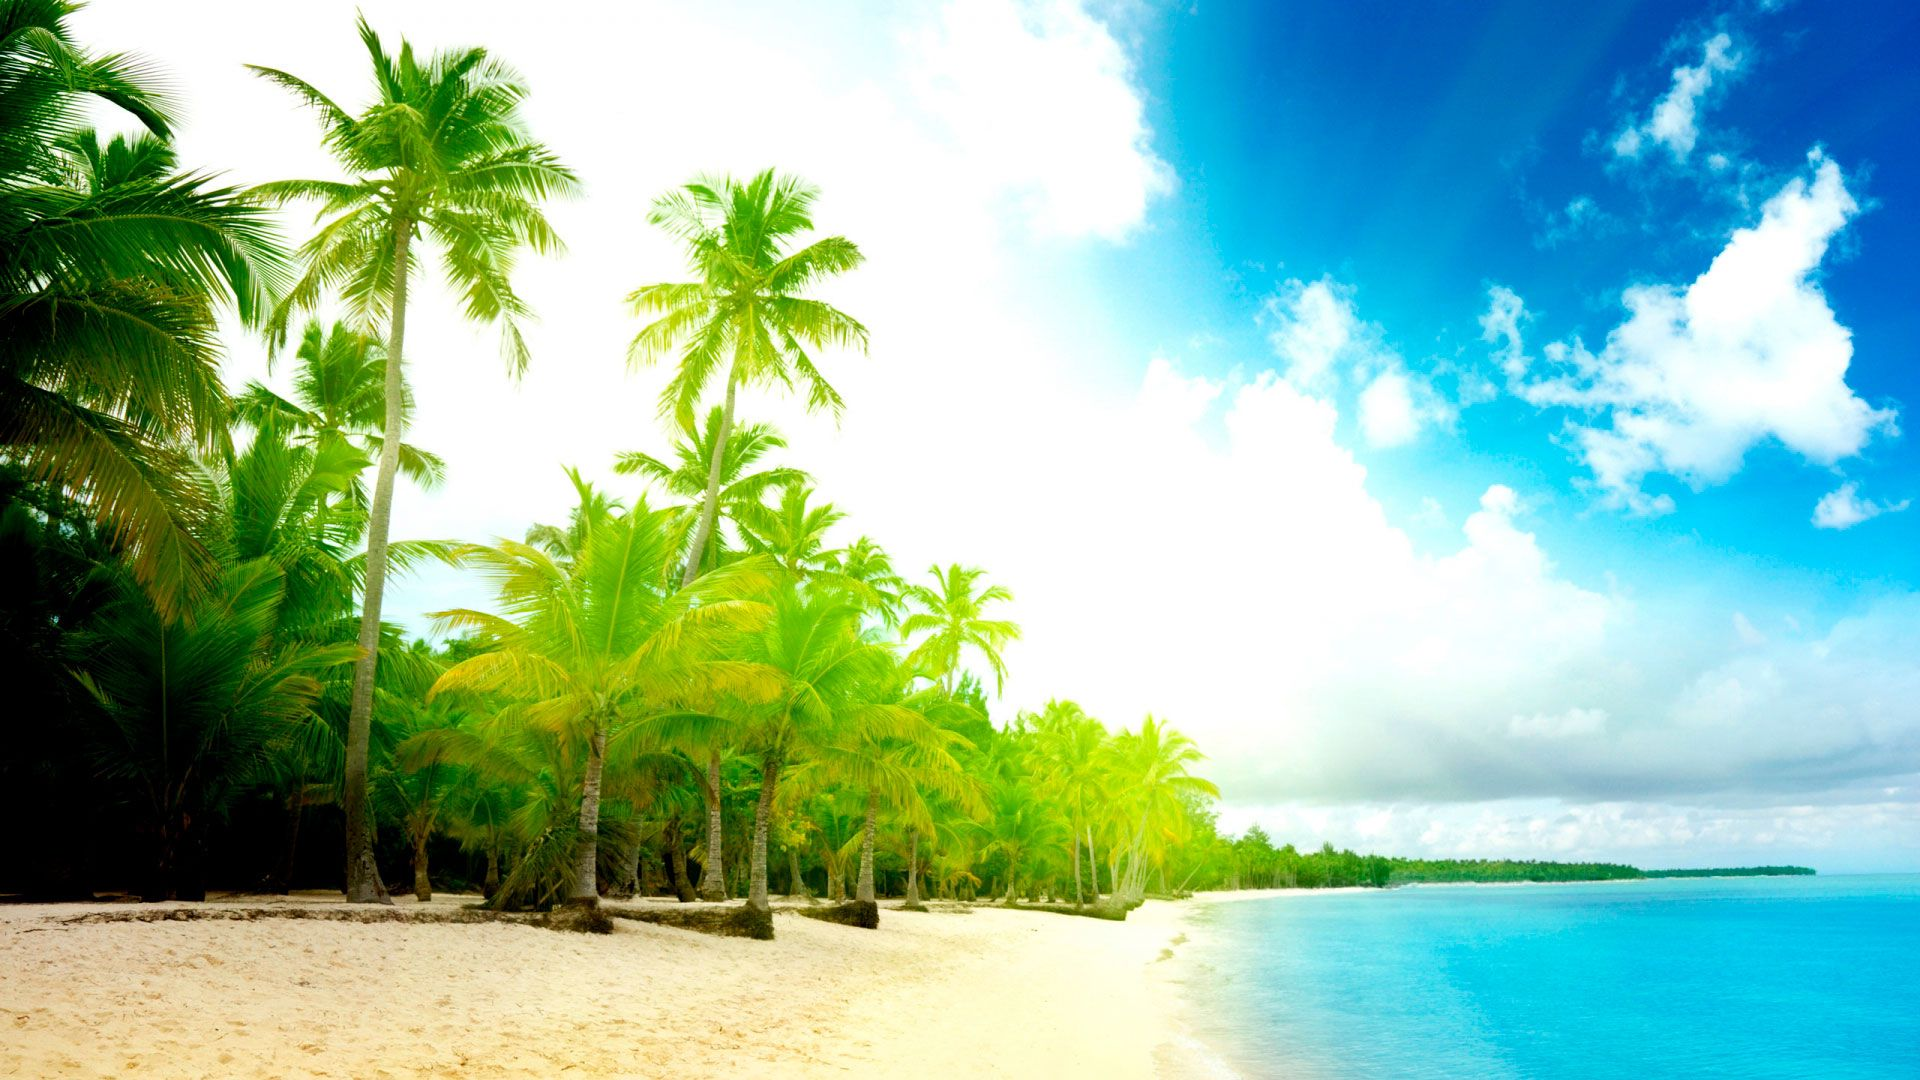 Background Sand Palm Trees